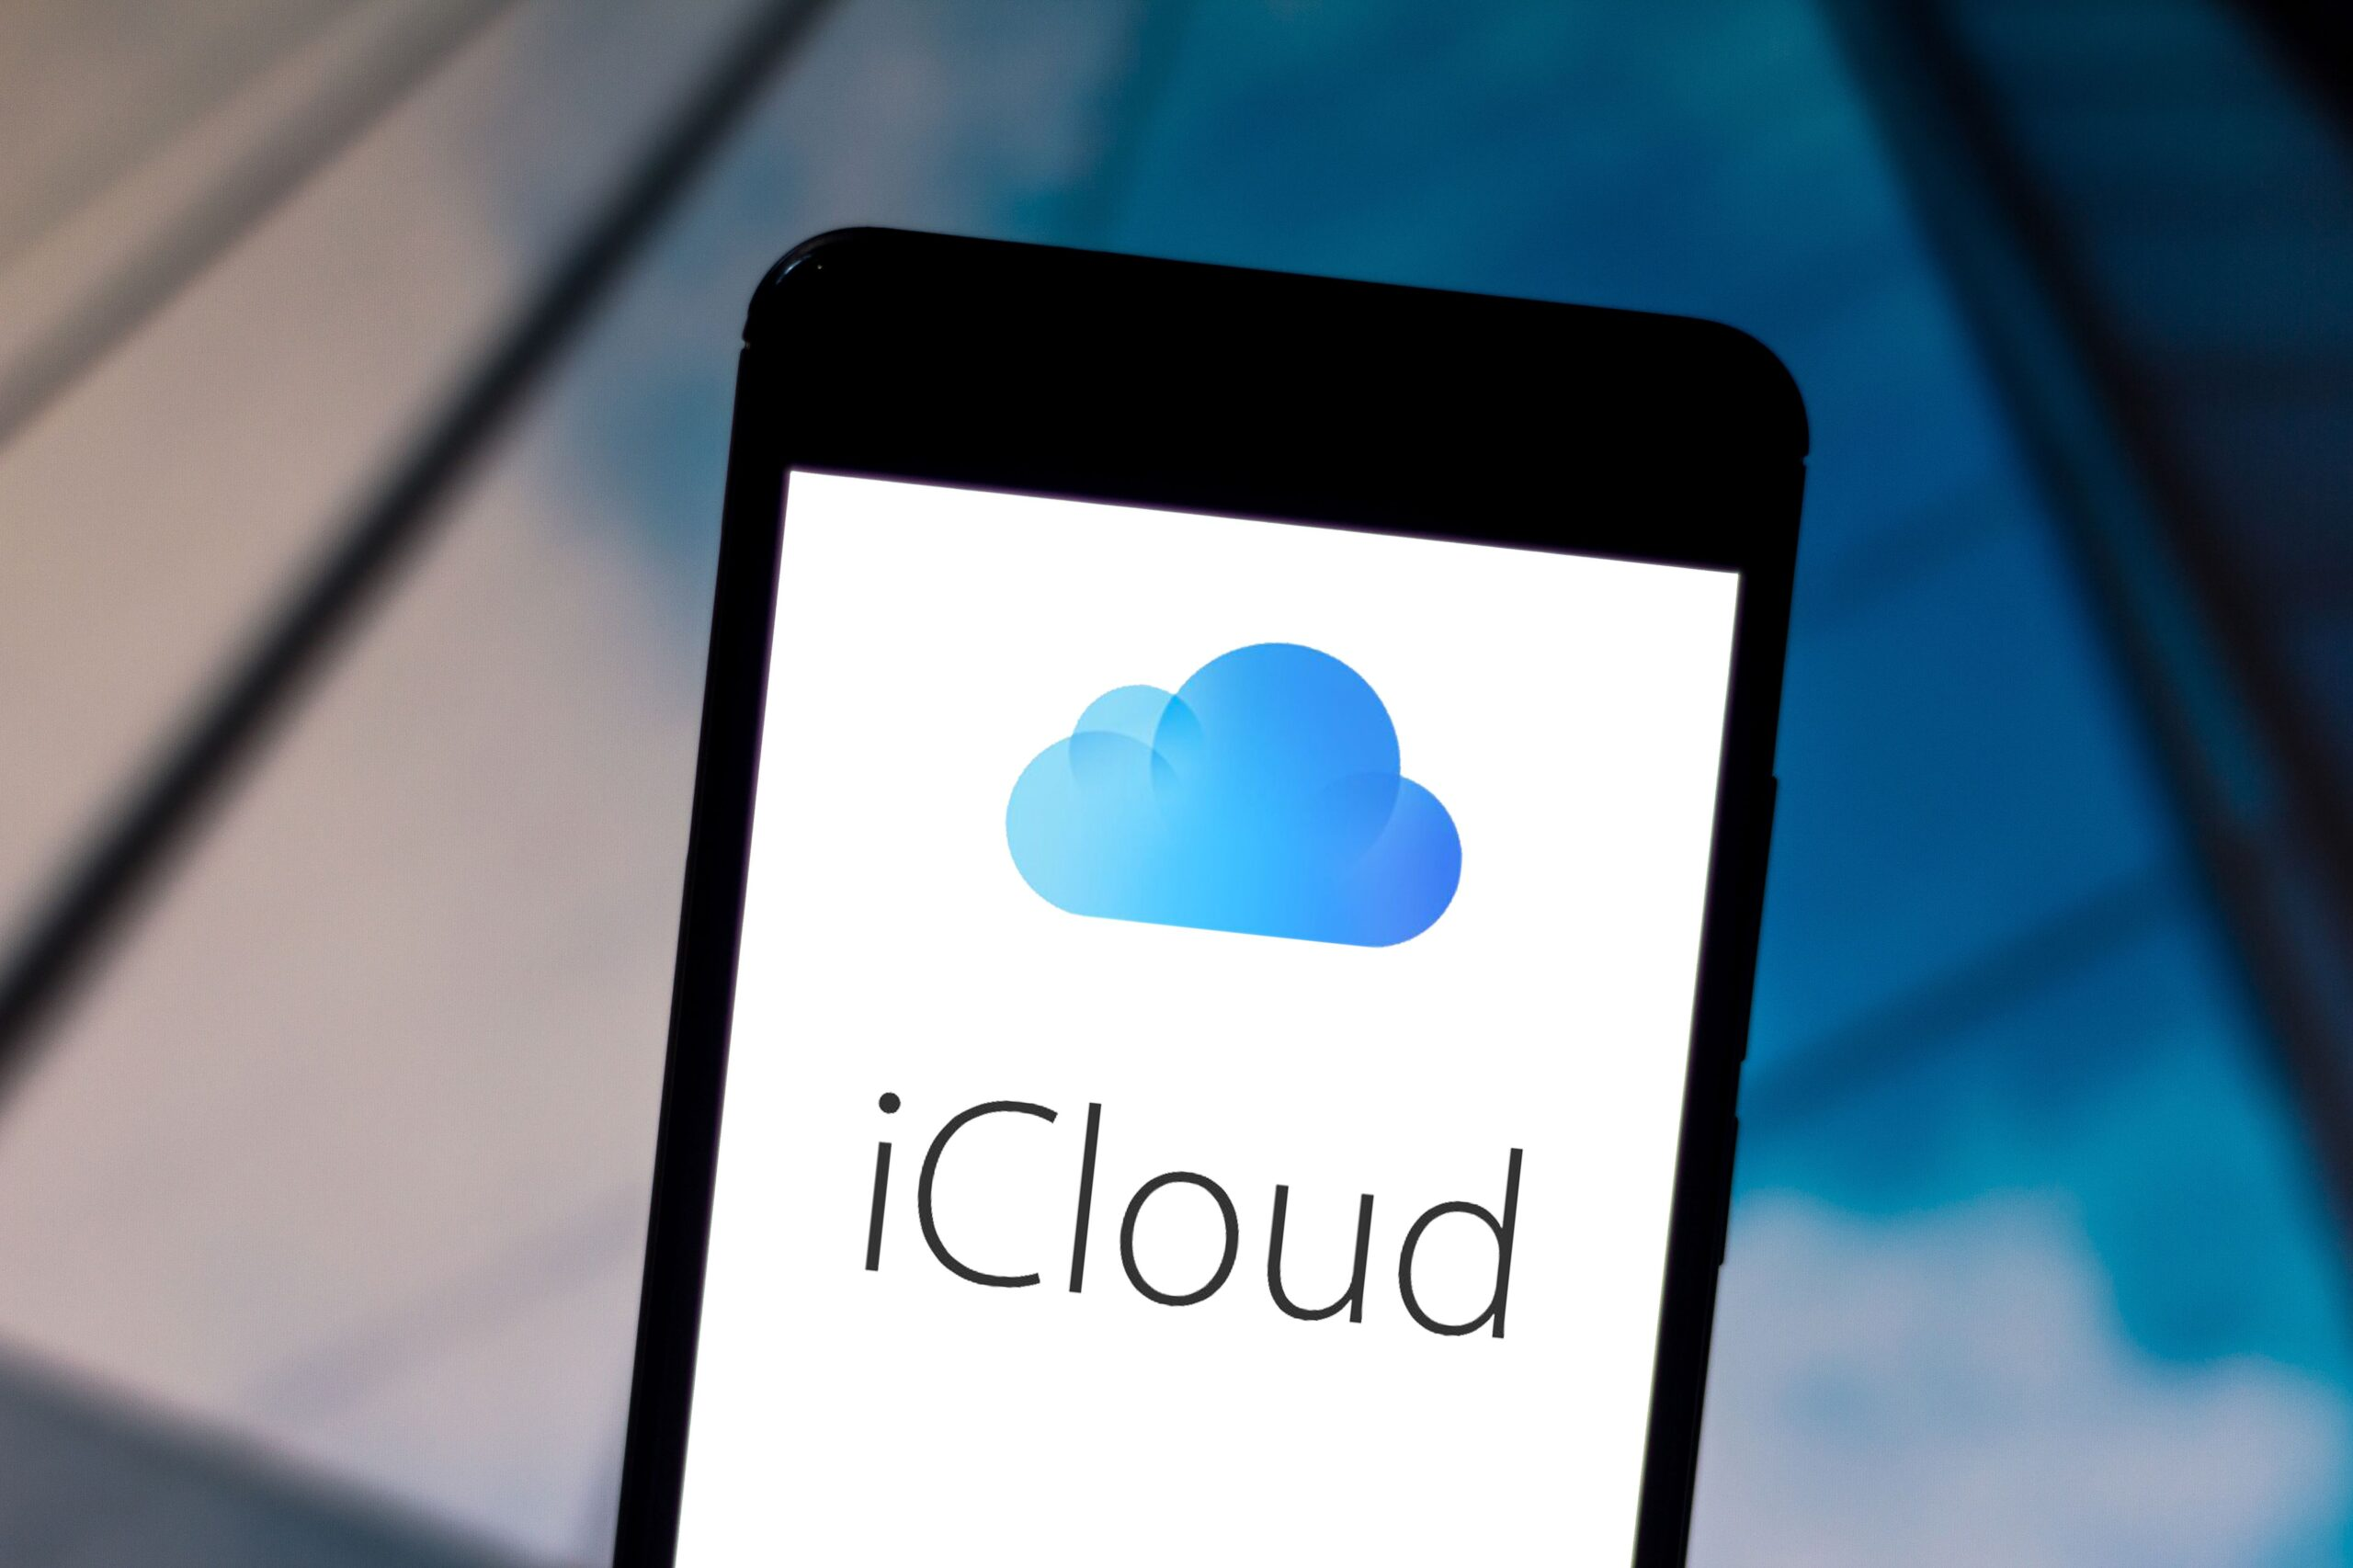 iCloud allegedly locked out a user over her last name